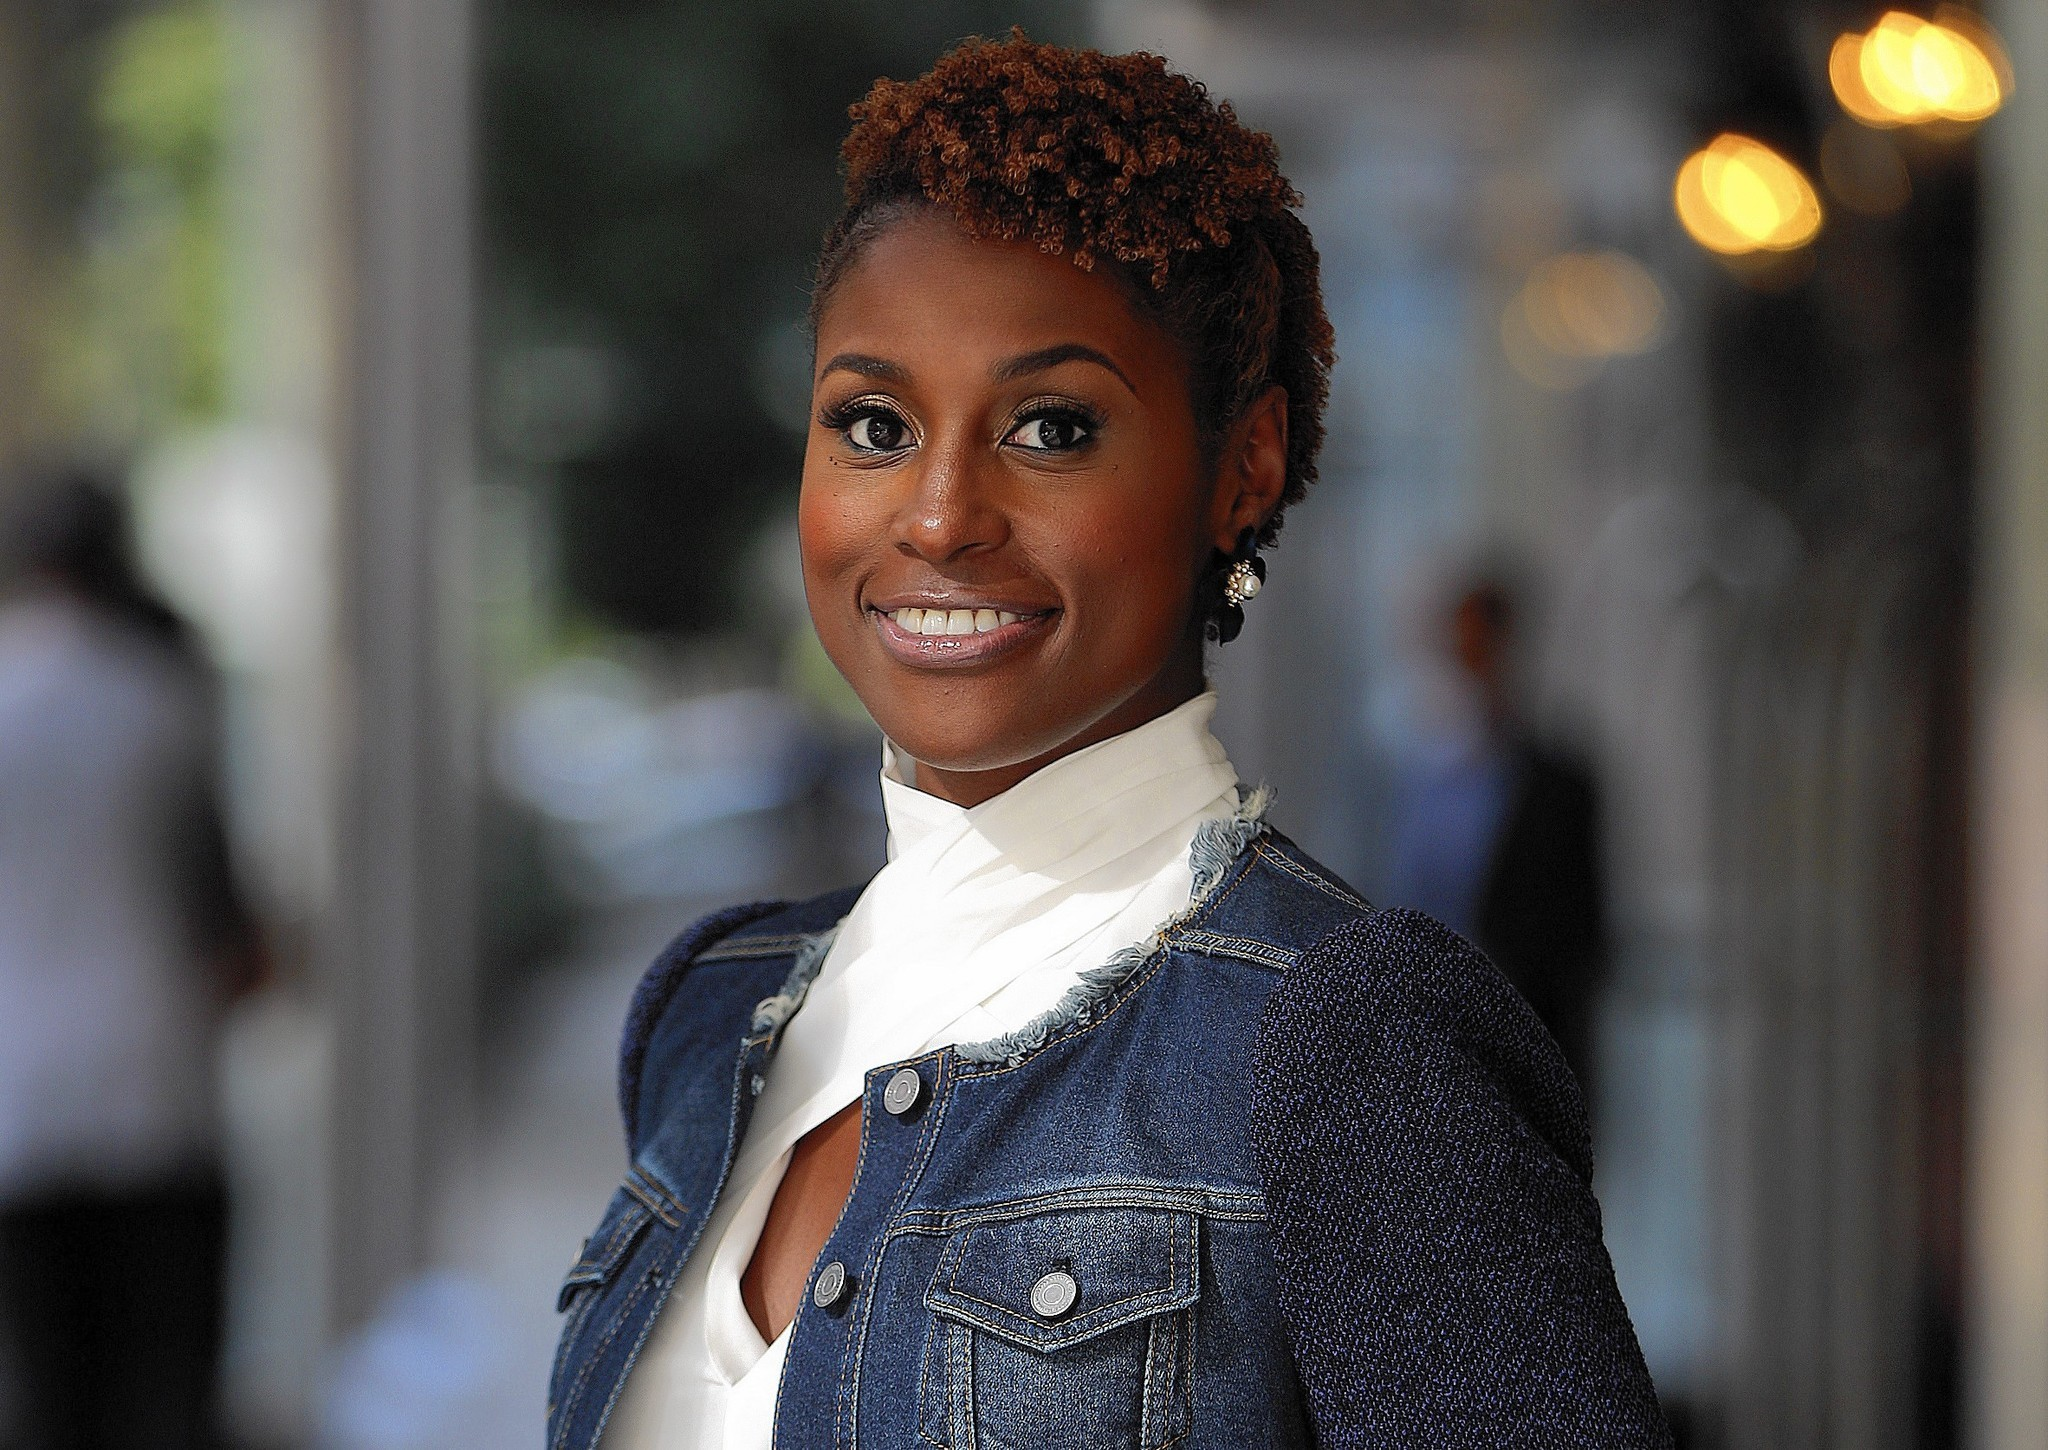 ct-issa-rae-insecure-mov-1007-20161006.jpg